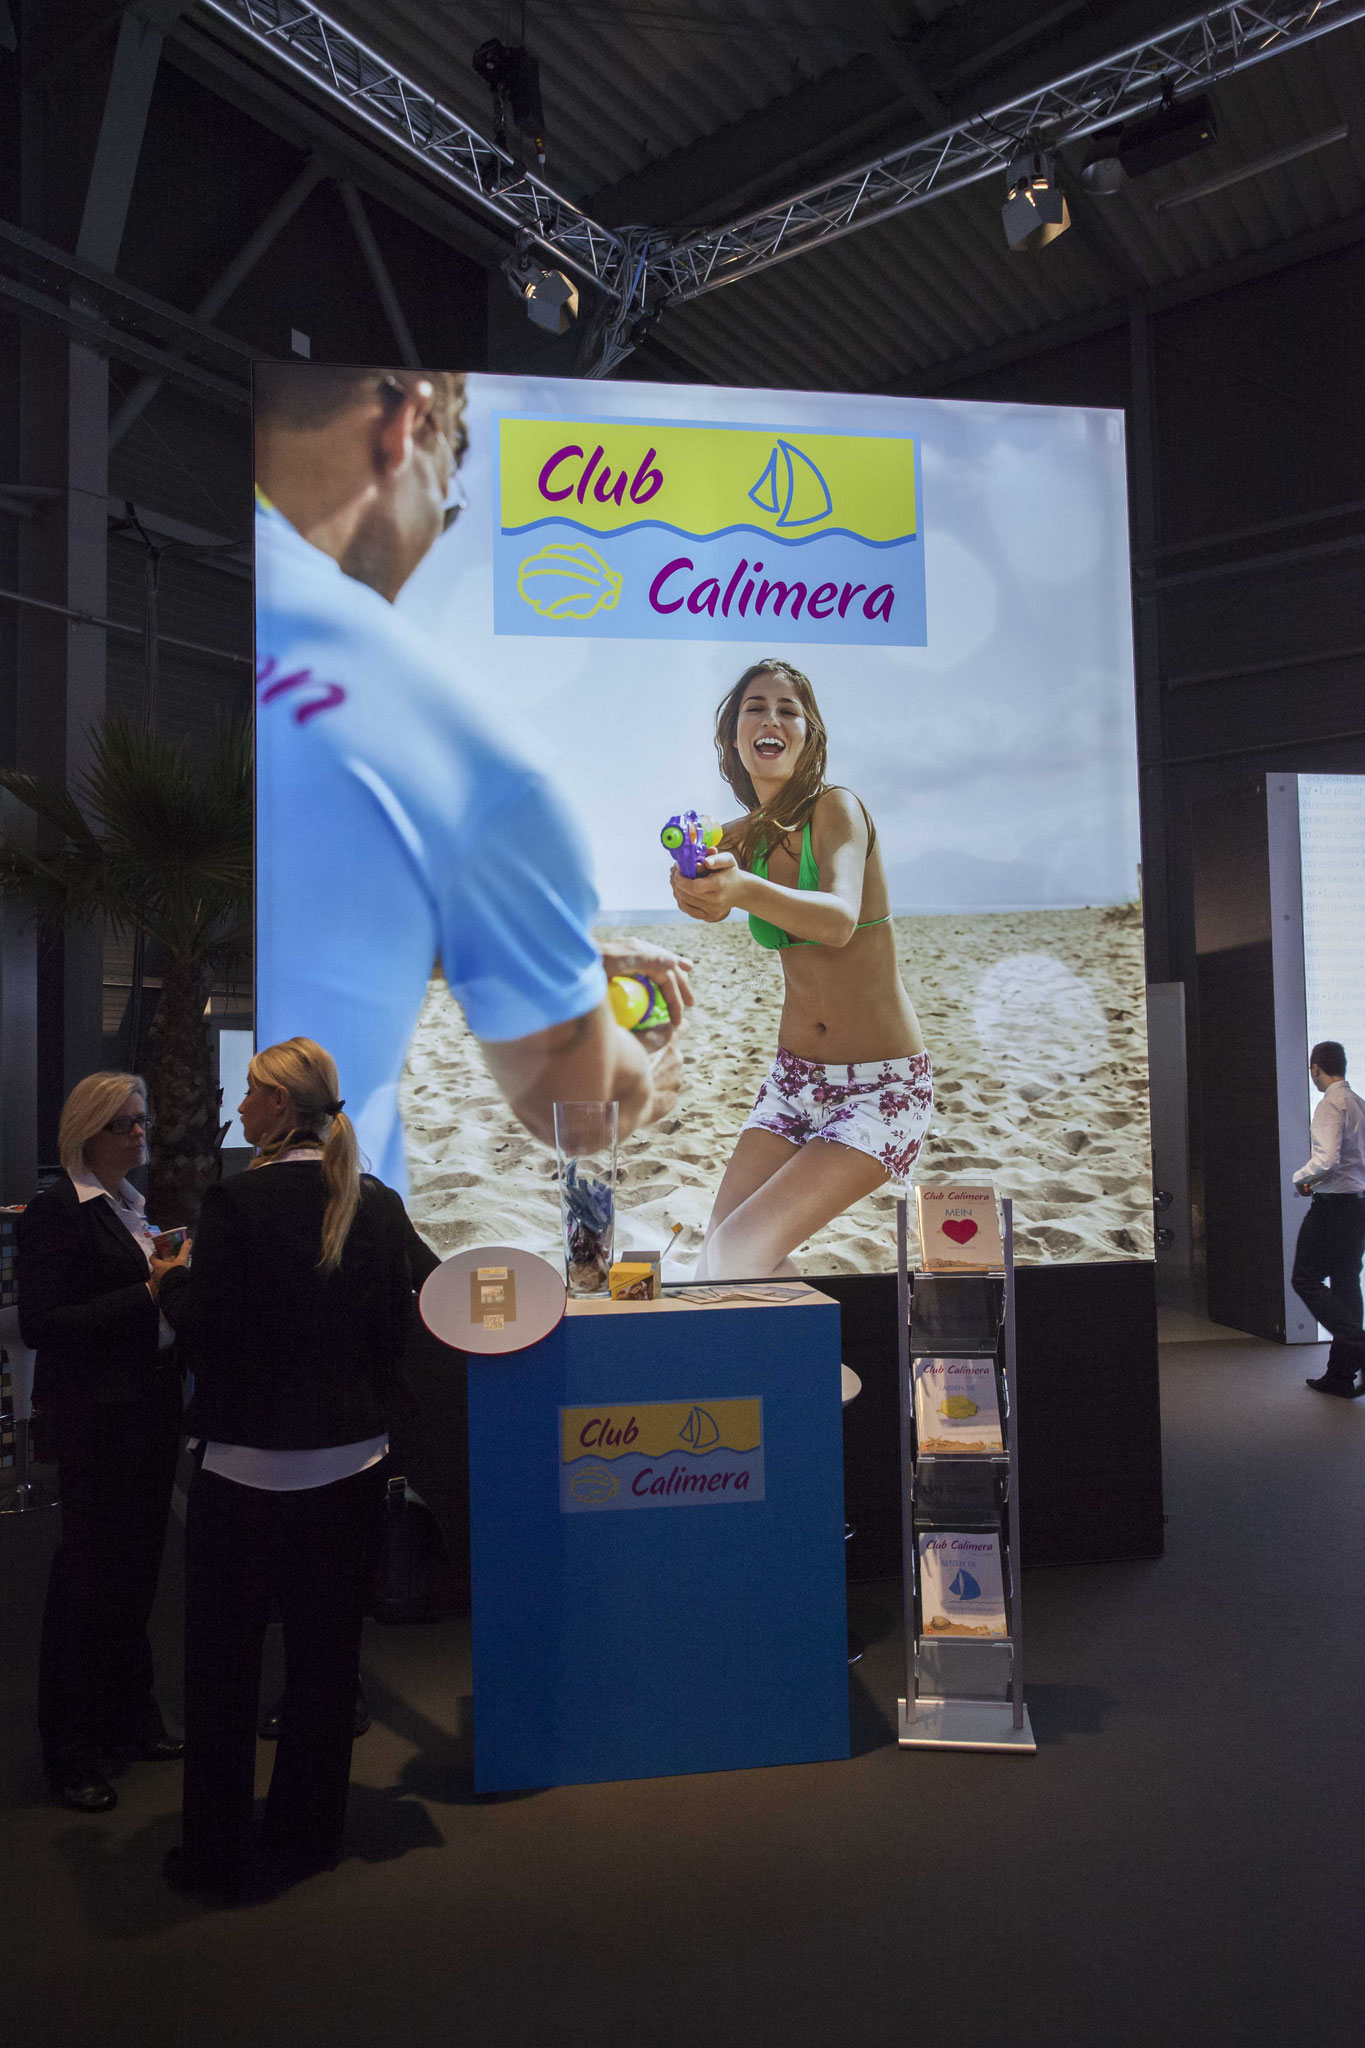 Club Calimera Messestand